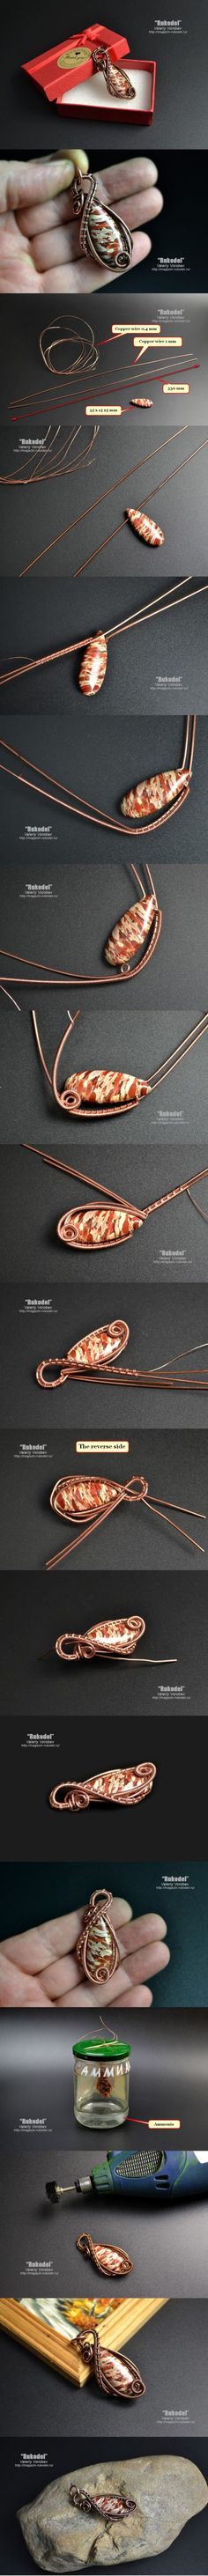 DIY wire twist necklace